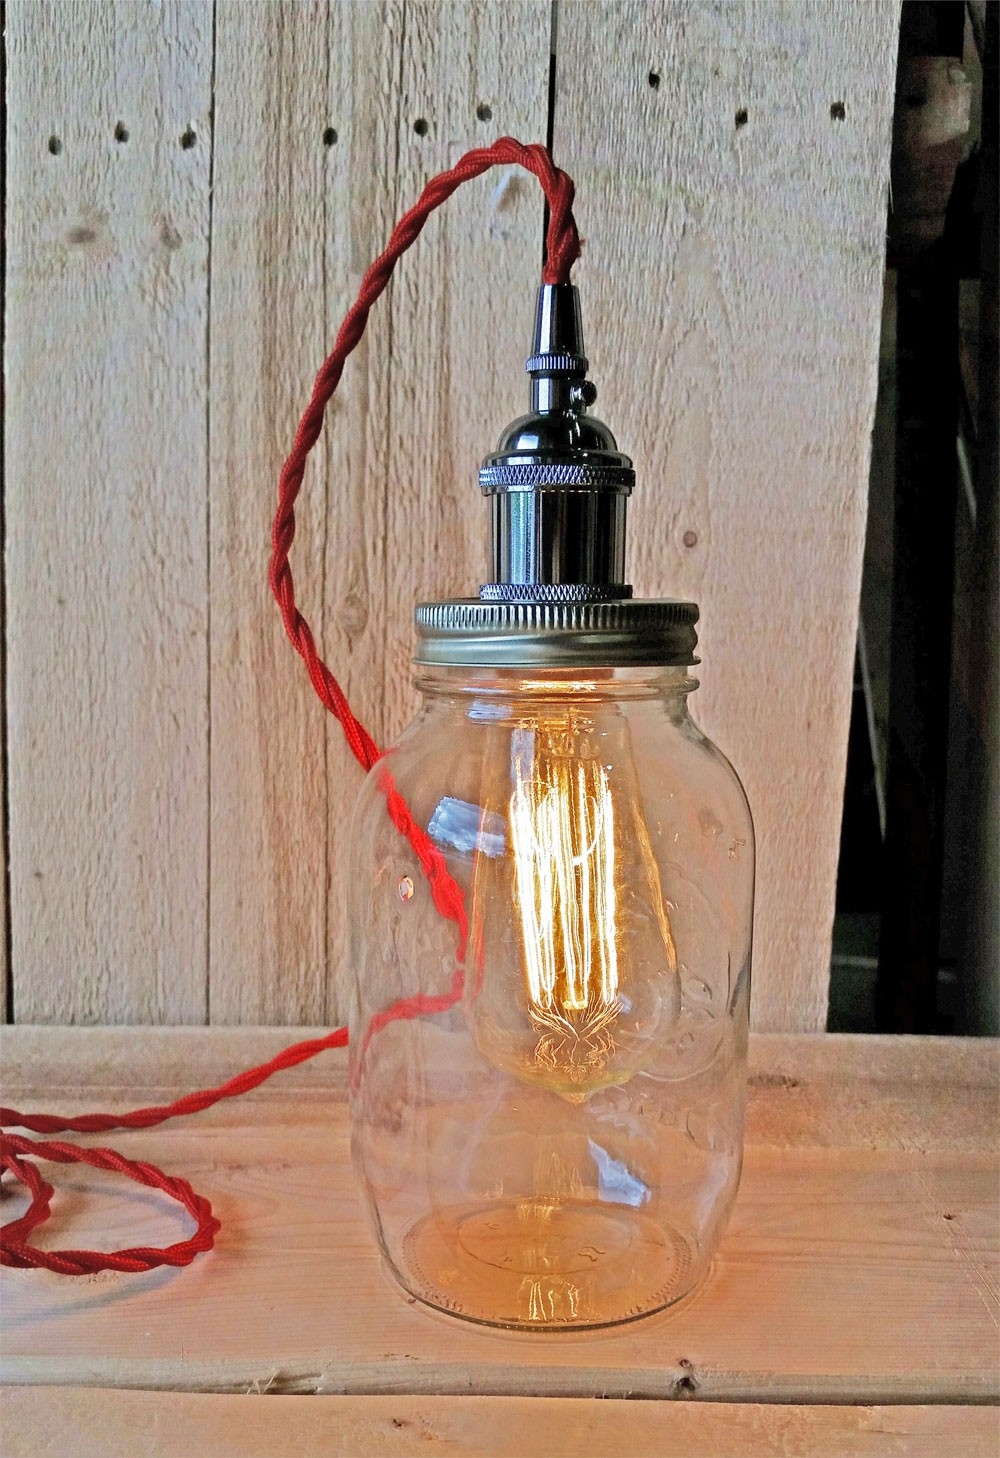 Metallic Socket with Twisted Cord Mason Jar Light DIY Kit (Red & Chrome)